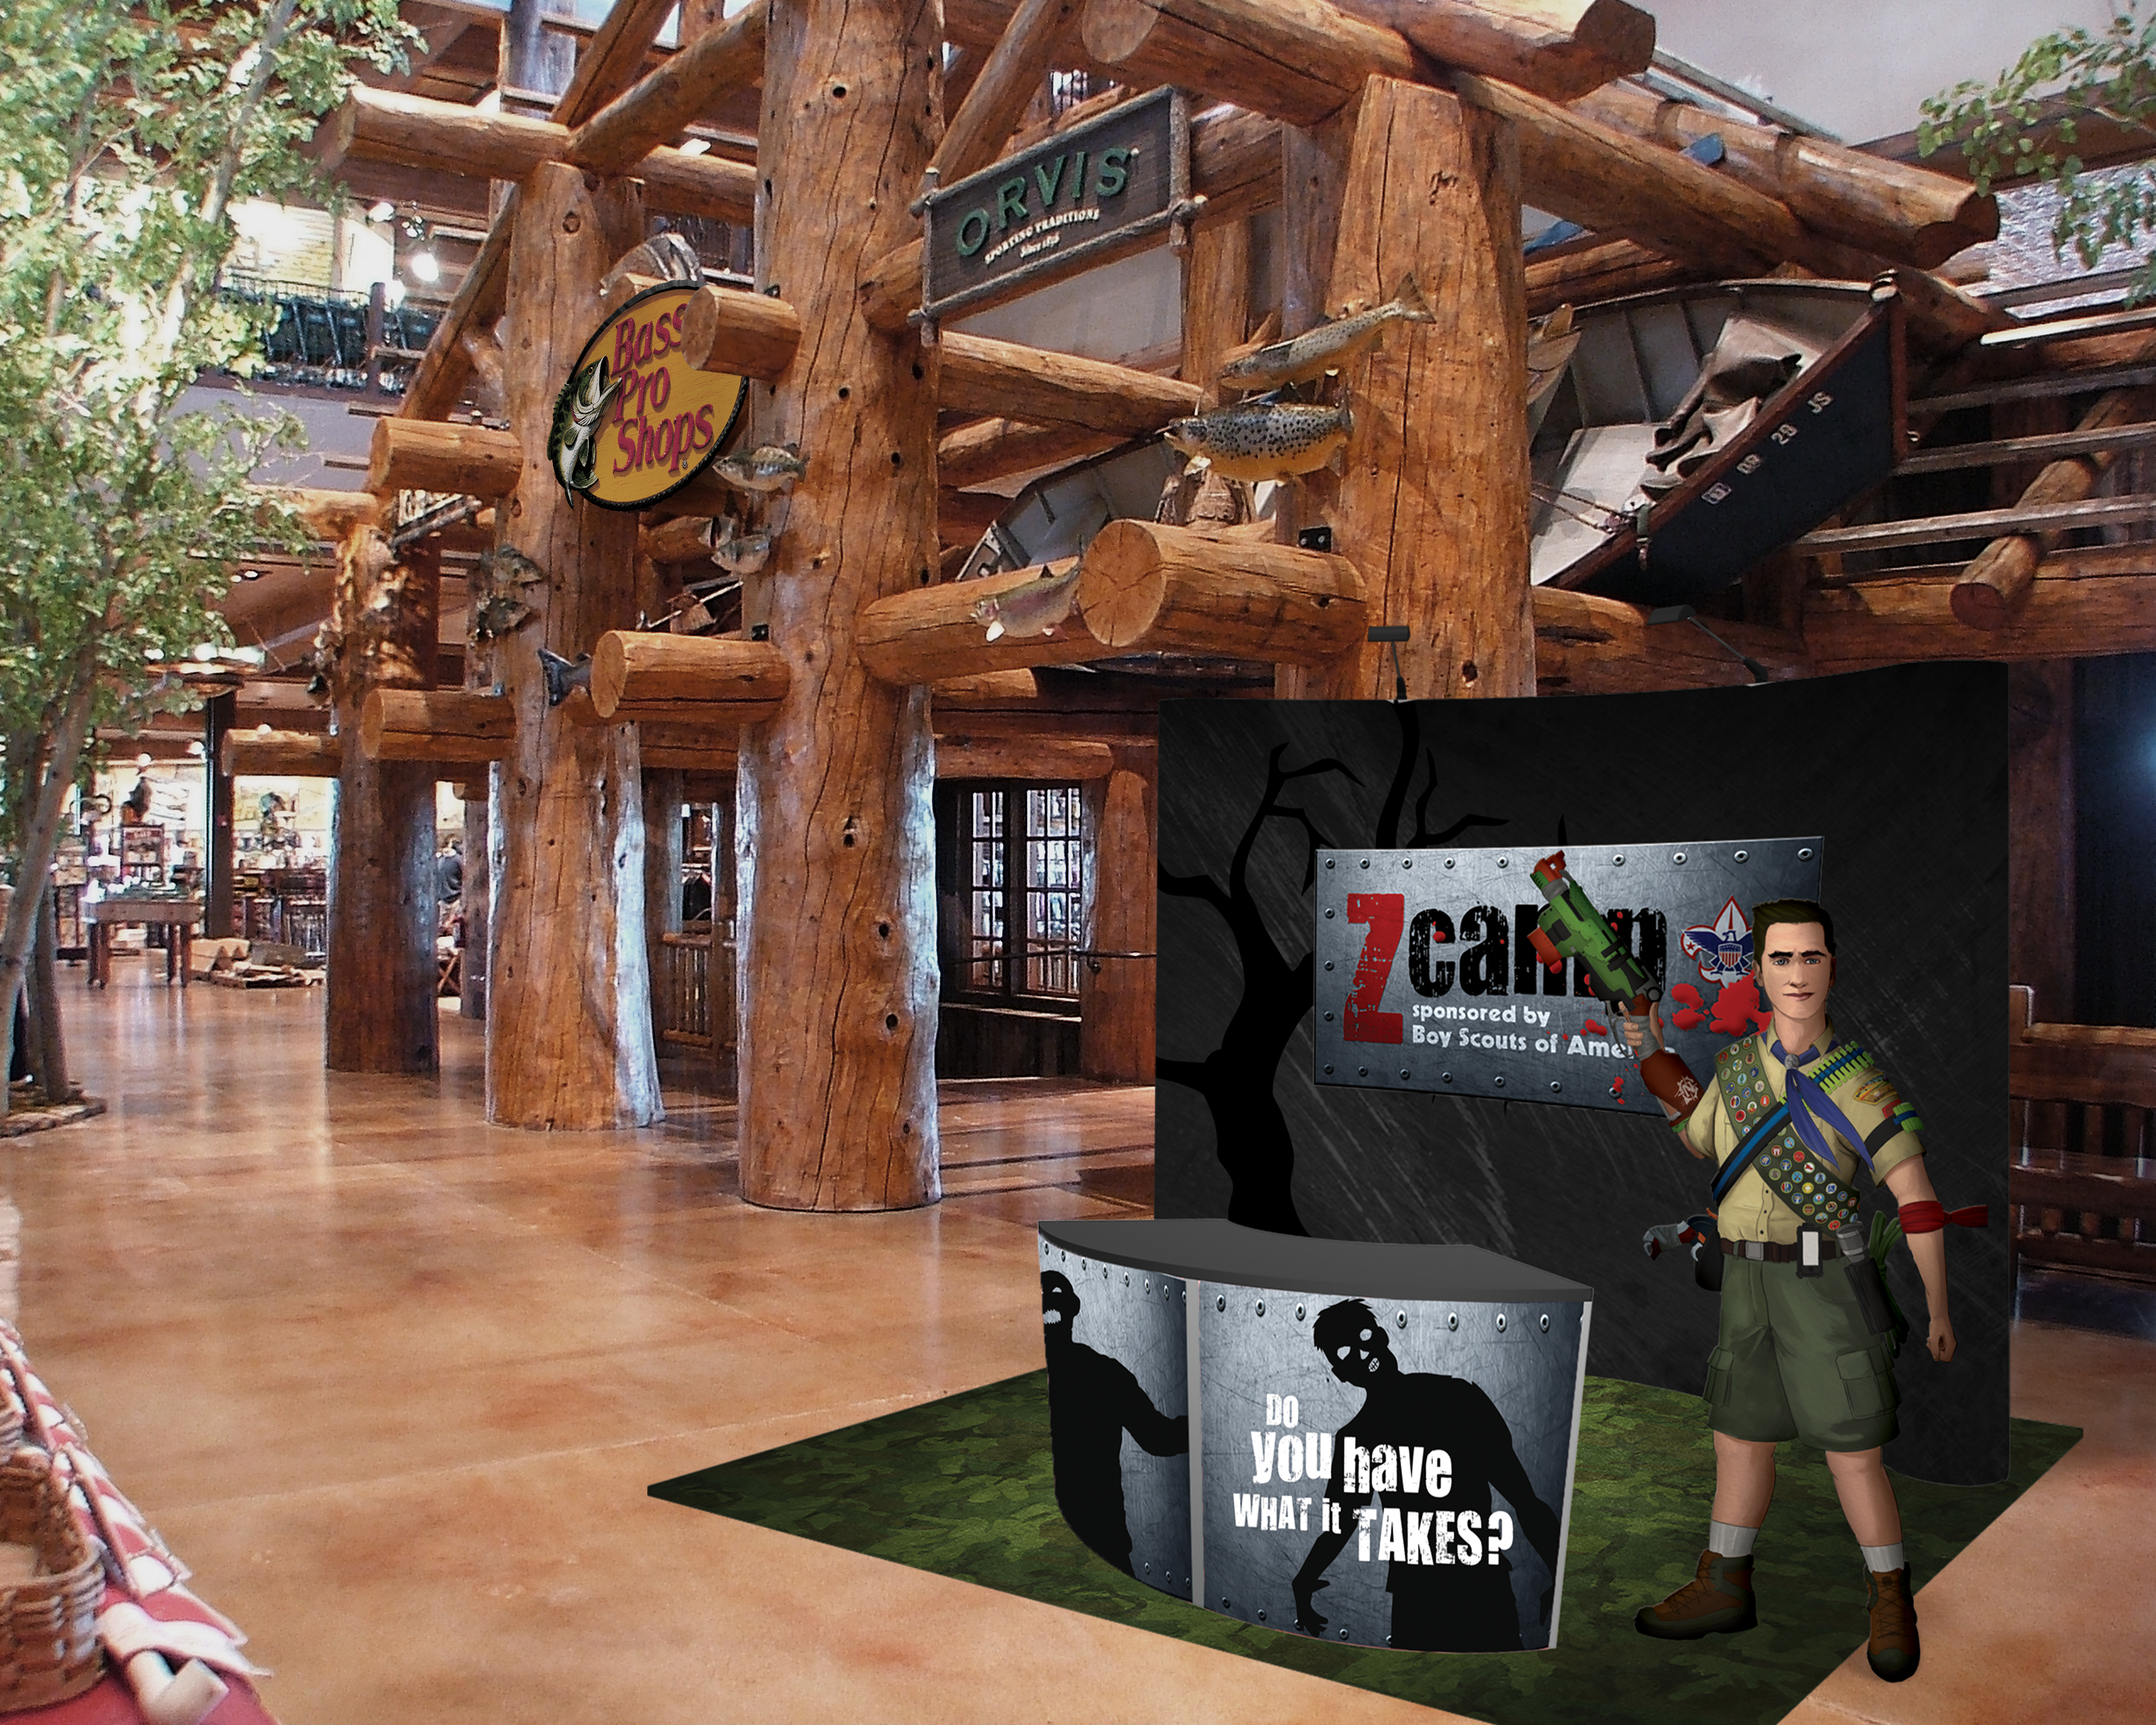 Zcamp Recruitment Booth Activation Stunt - Mockup v2